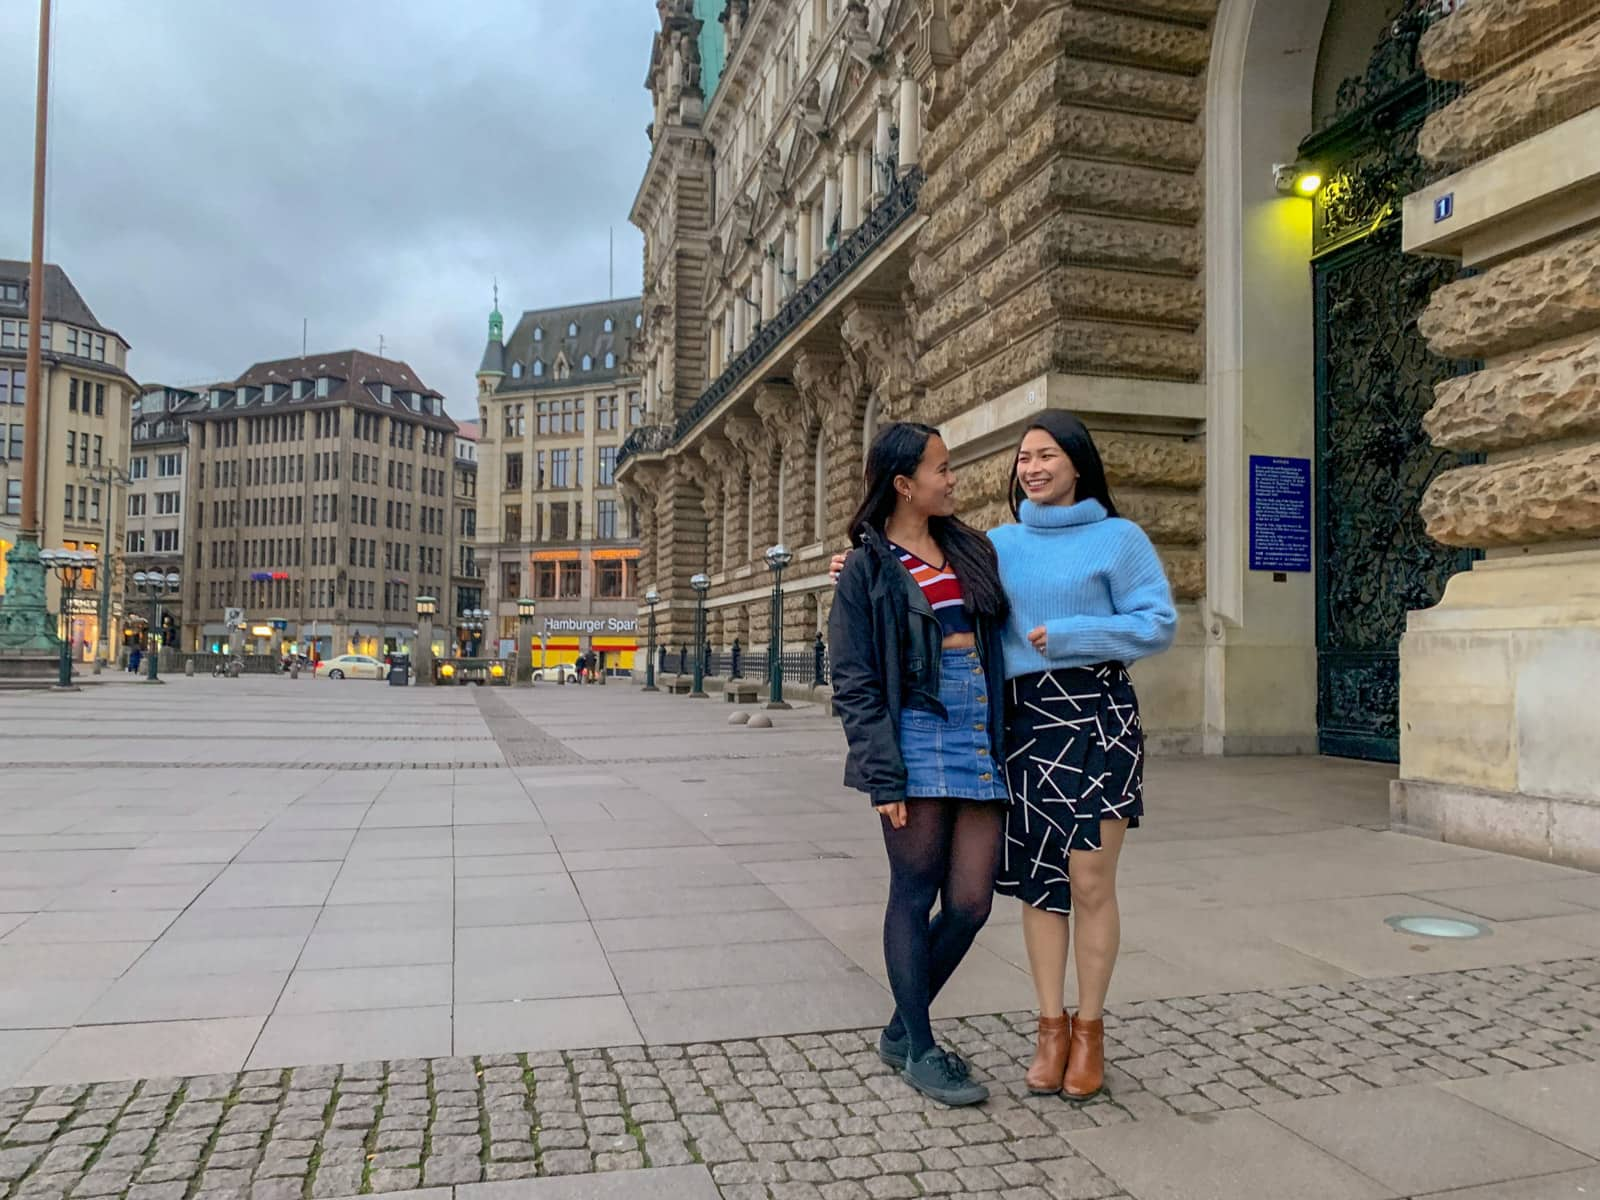 Two women smiling, with their arms around each other. Both have dark hair. One is wearing a striped coloured top and a black jacket with a blue skirt, the other is wearing a light blue sweater with a black-and-white patterned skirt. They are in a street setting in Hamburg, Germany